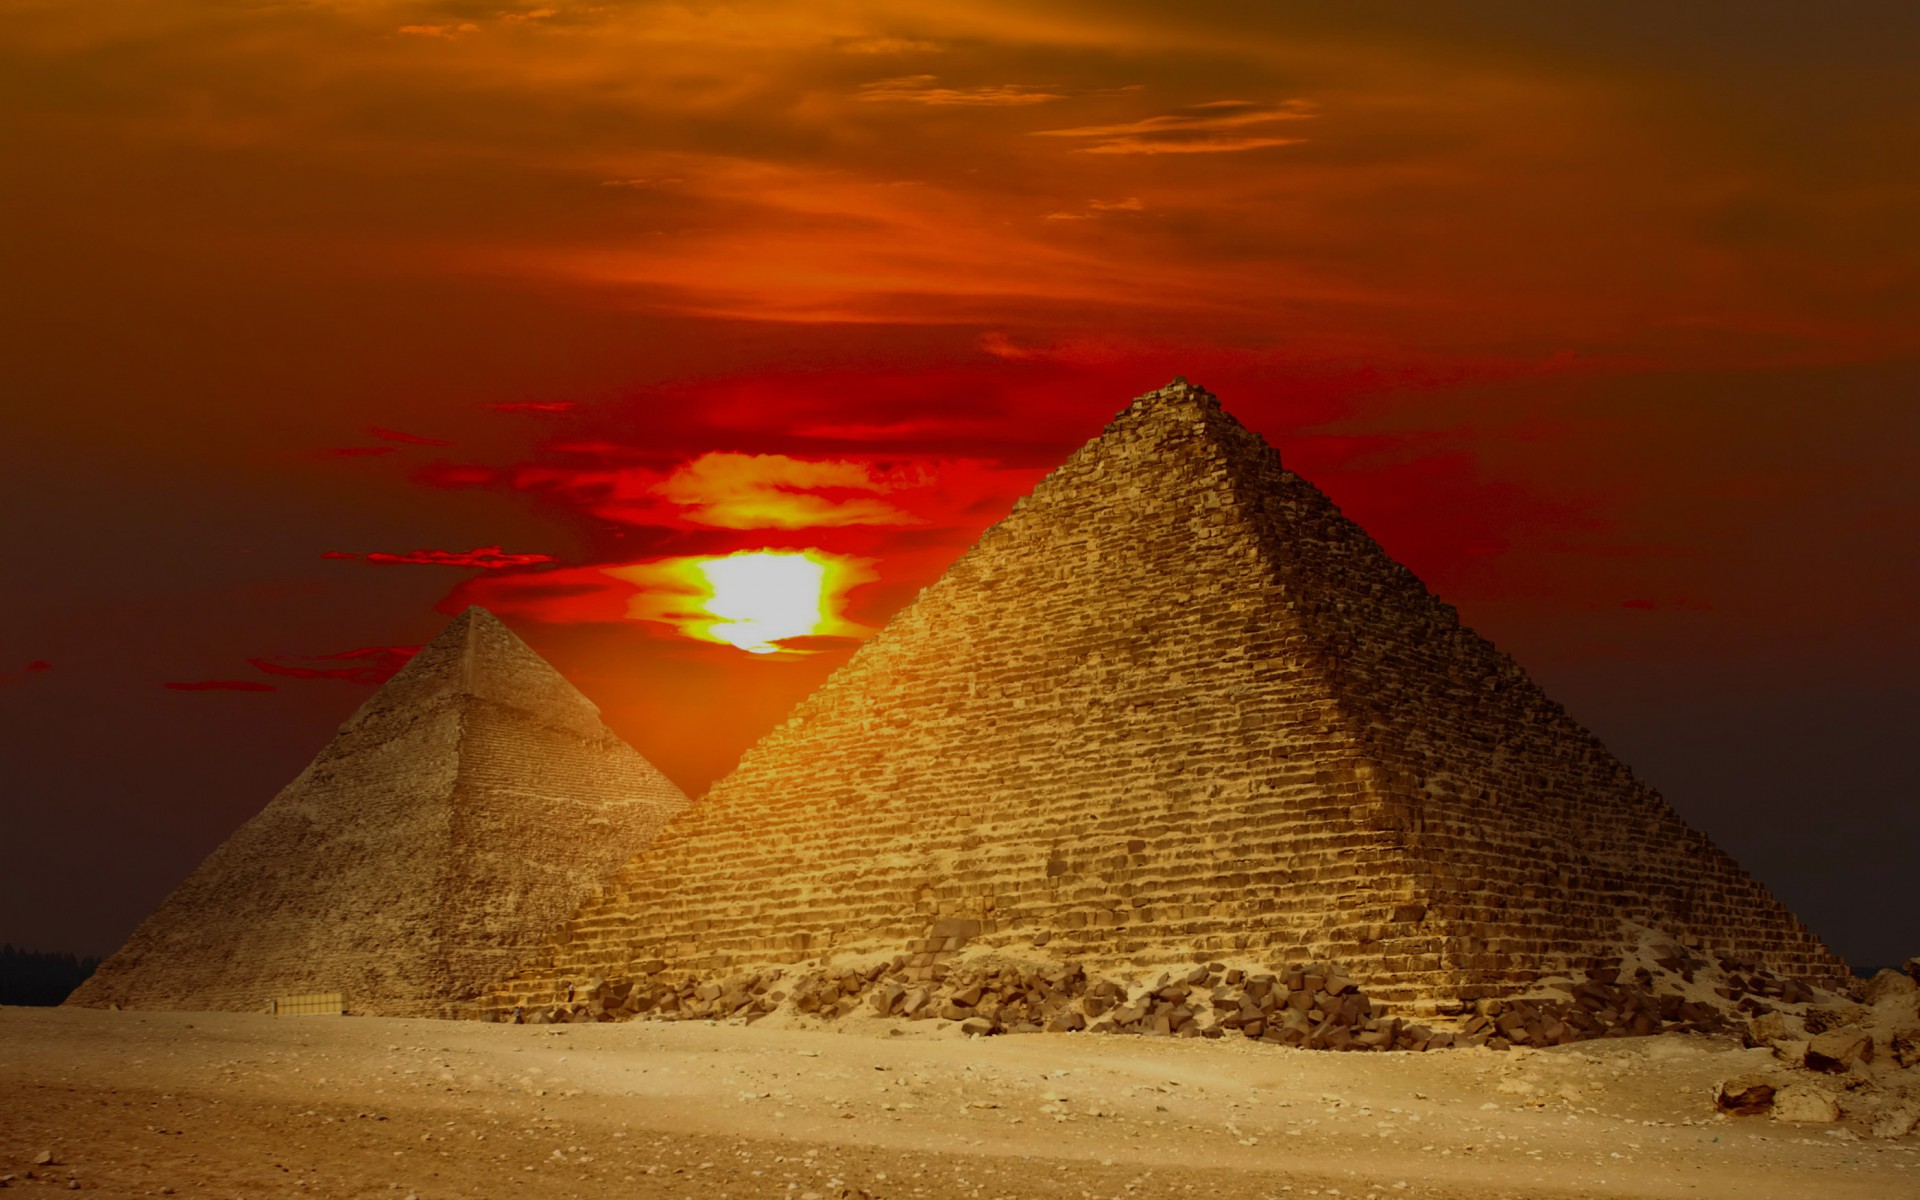 Animated Waterfall Wallpapers For Mobile Giza Pyramids Egypt Red Sunset Wallpapers Giza Pyramids